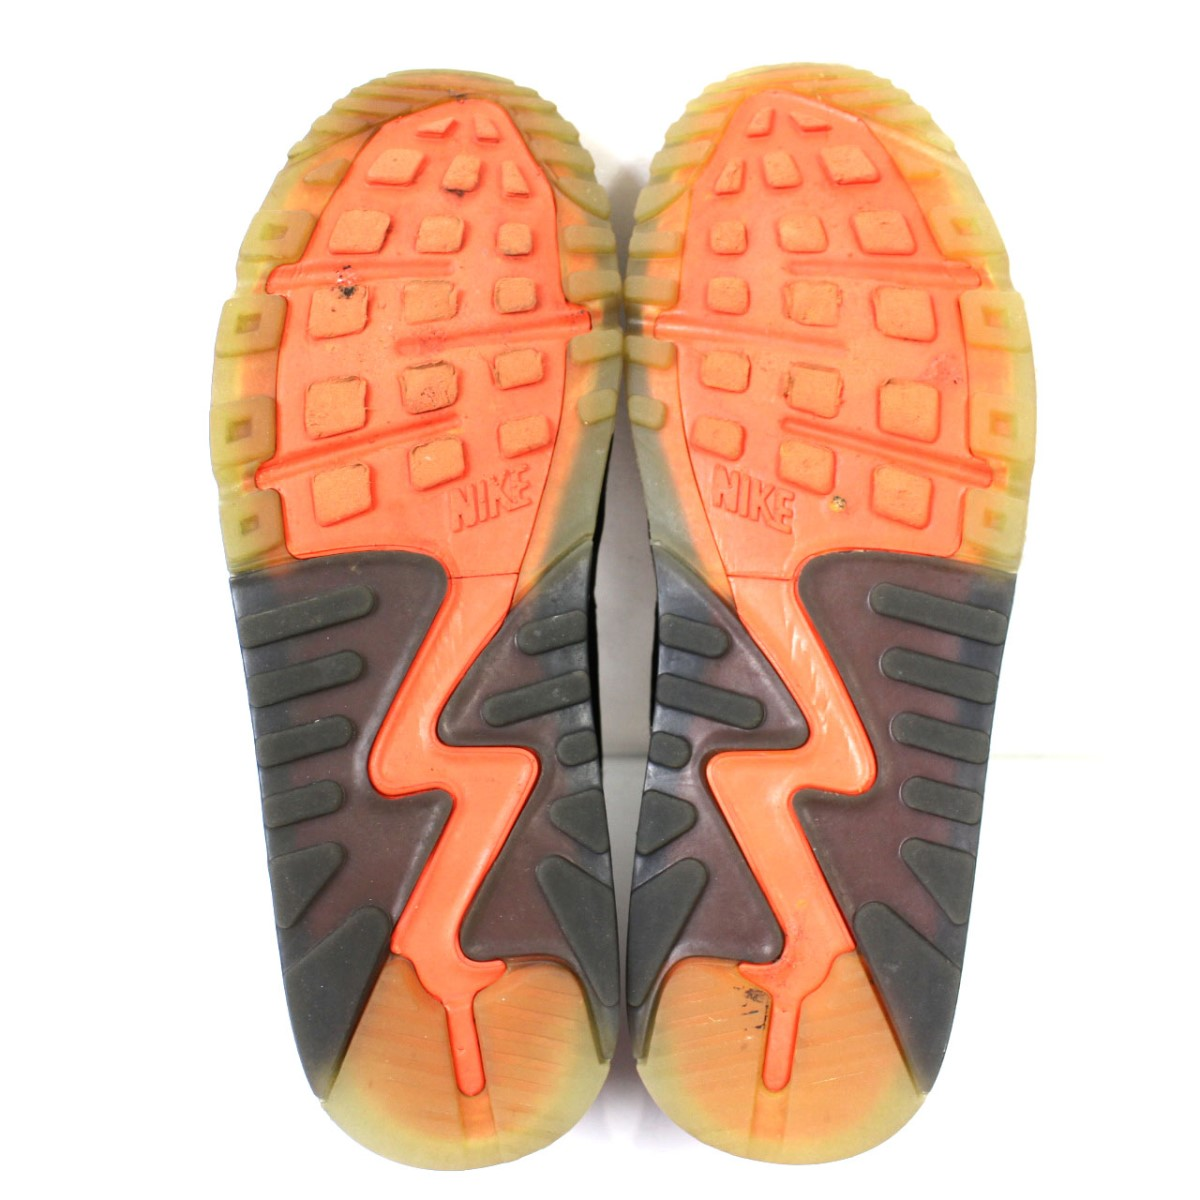 NIKE AIR MAX 90 ICE 717,942 006 sneakers shoes orange X black other size: 27cm (Nike)